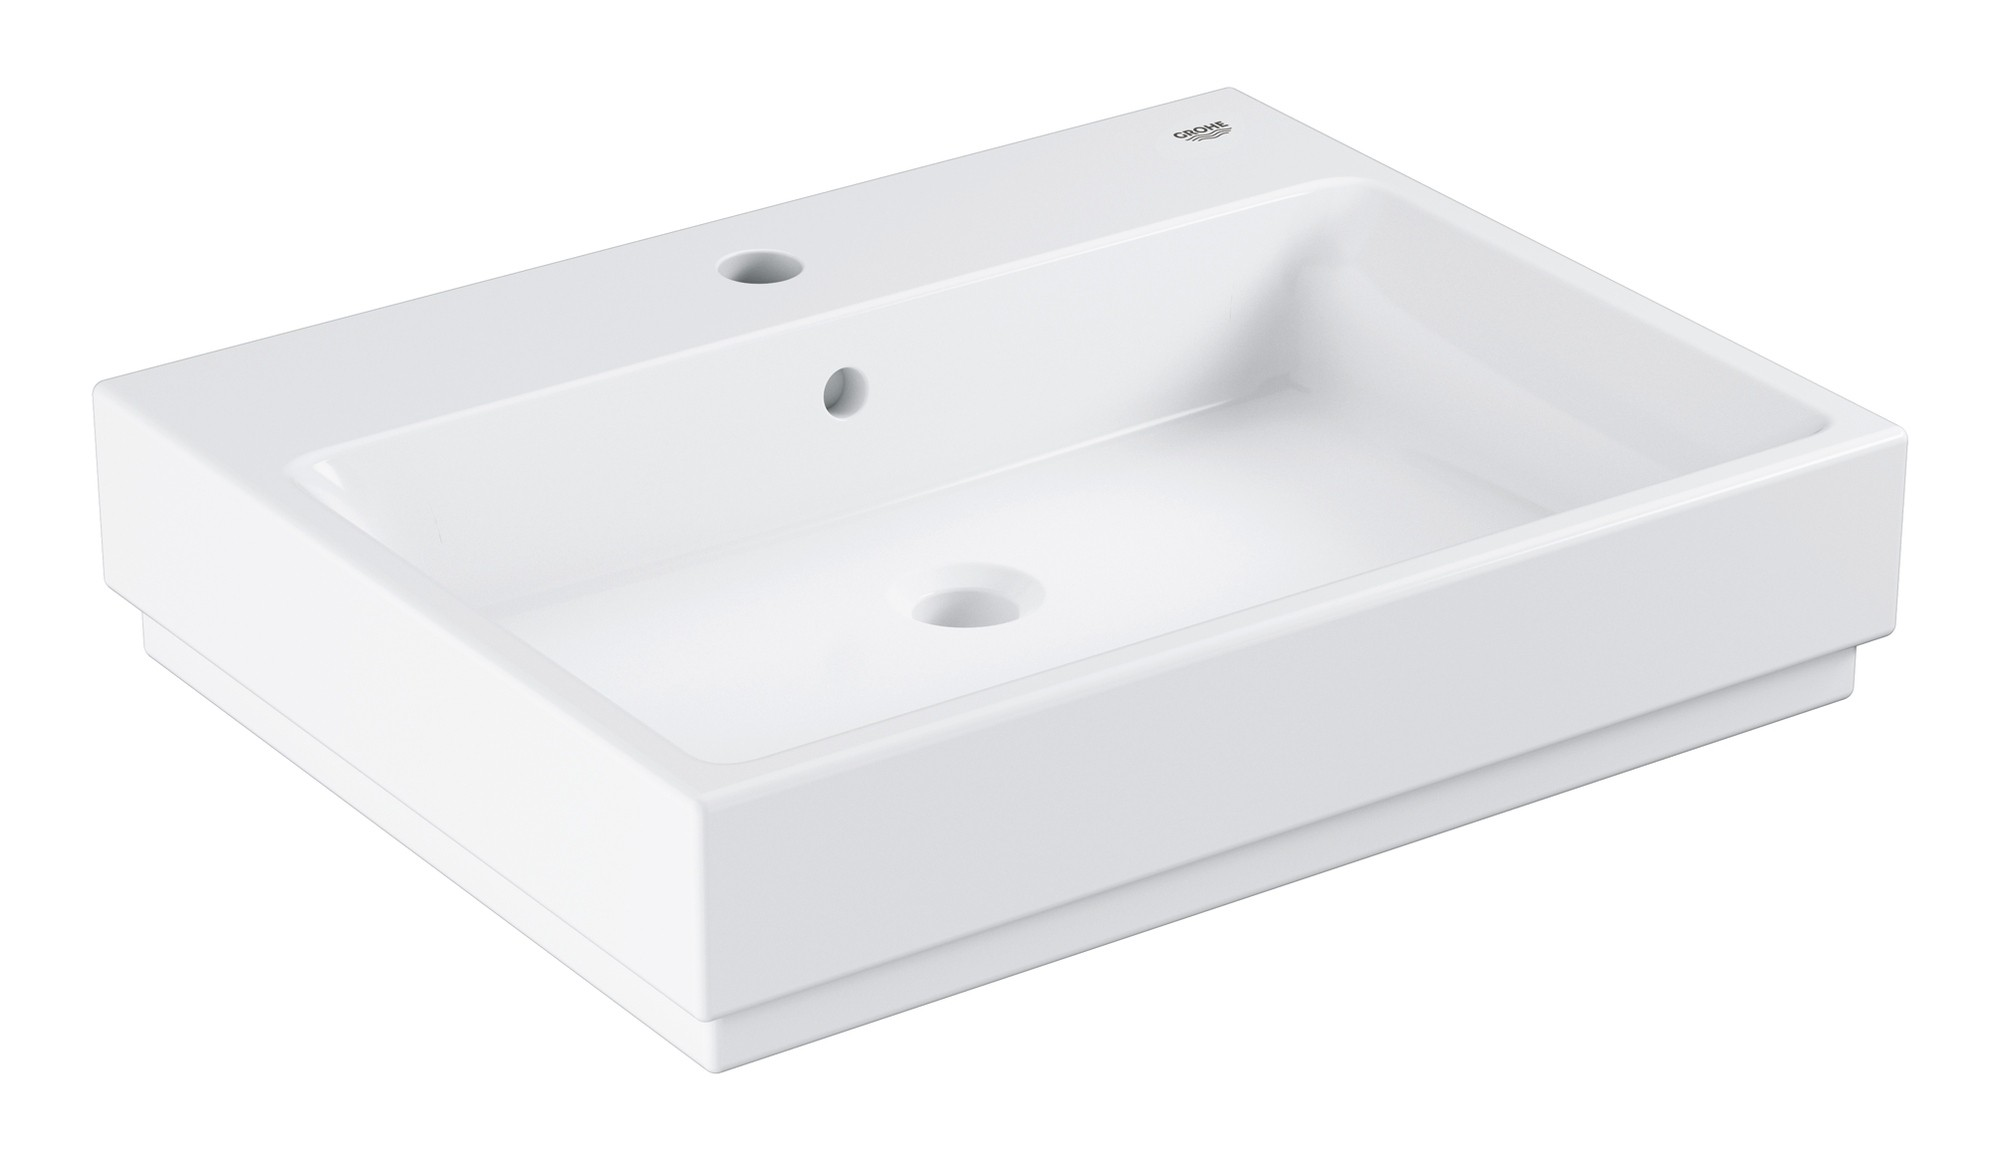 Inda Waschtischkonsole Grohe Cube Ceramic Countertop Washbasin For Furniture With